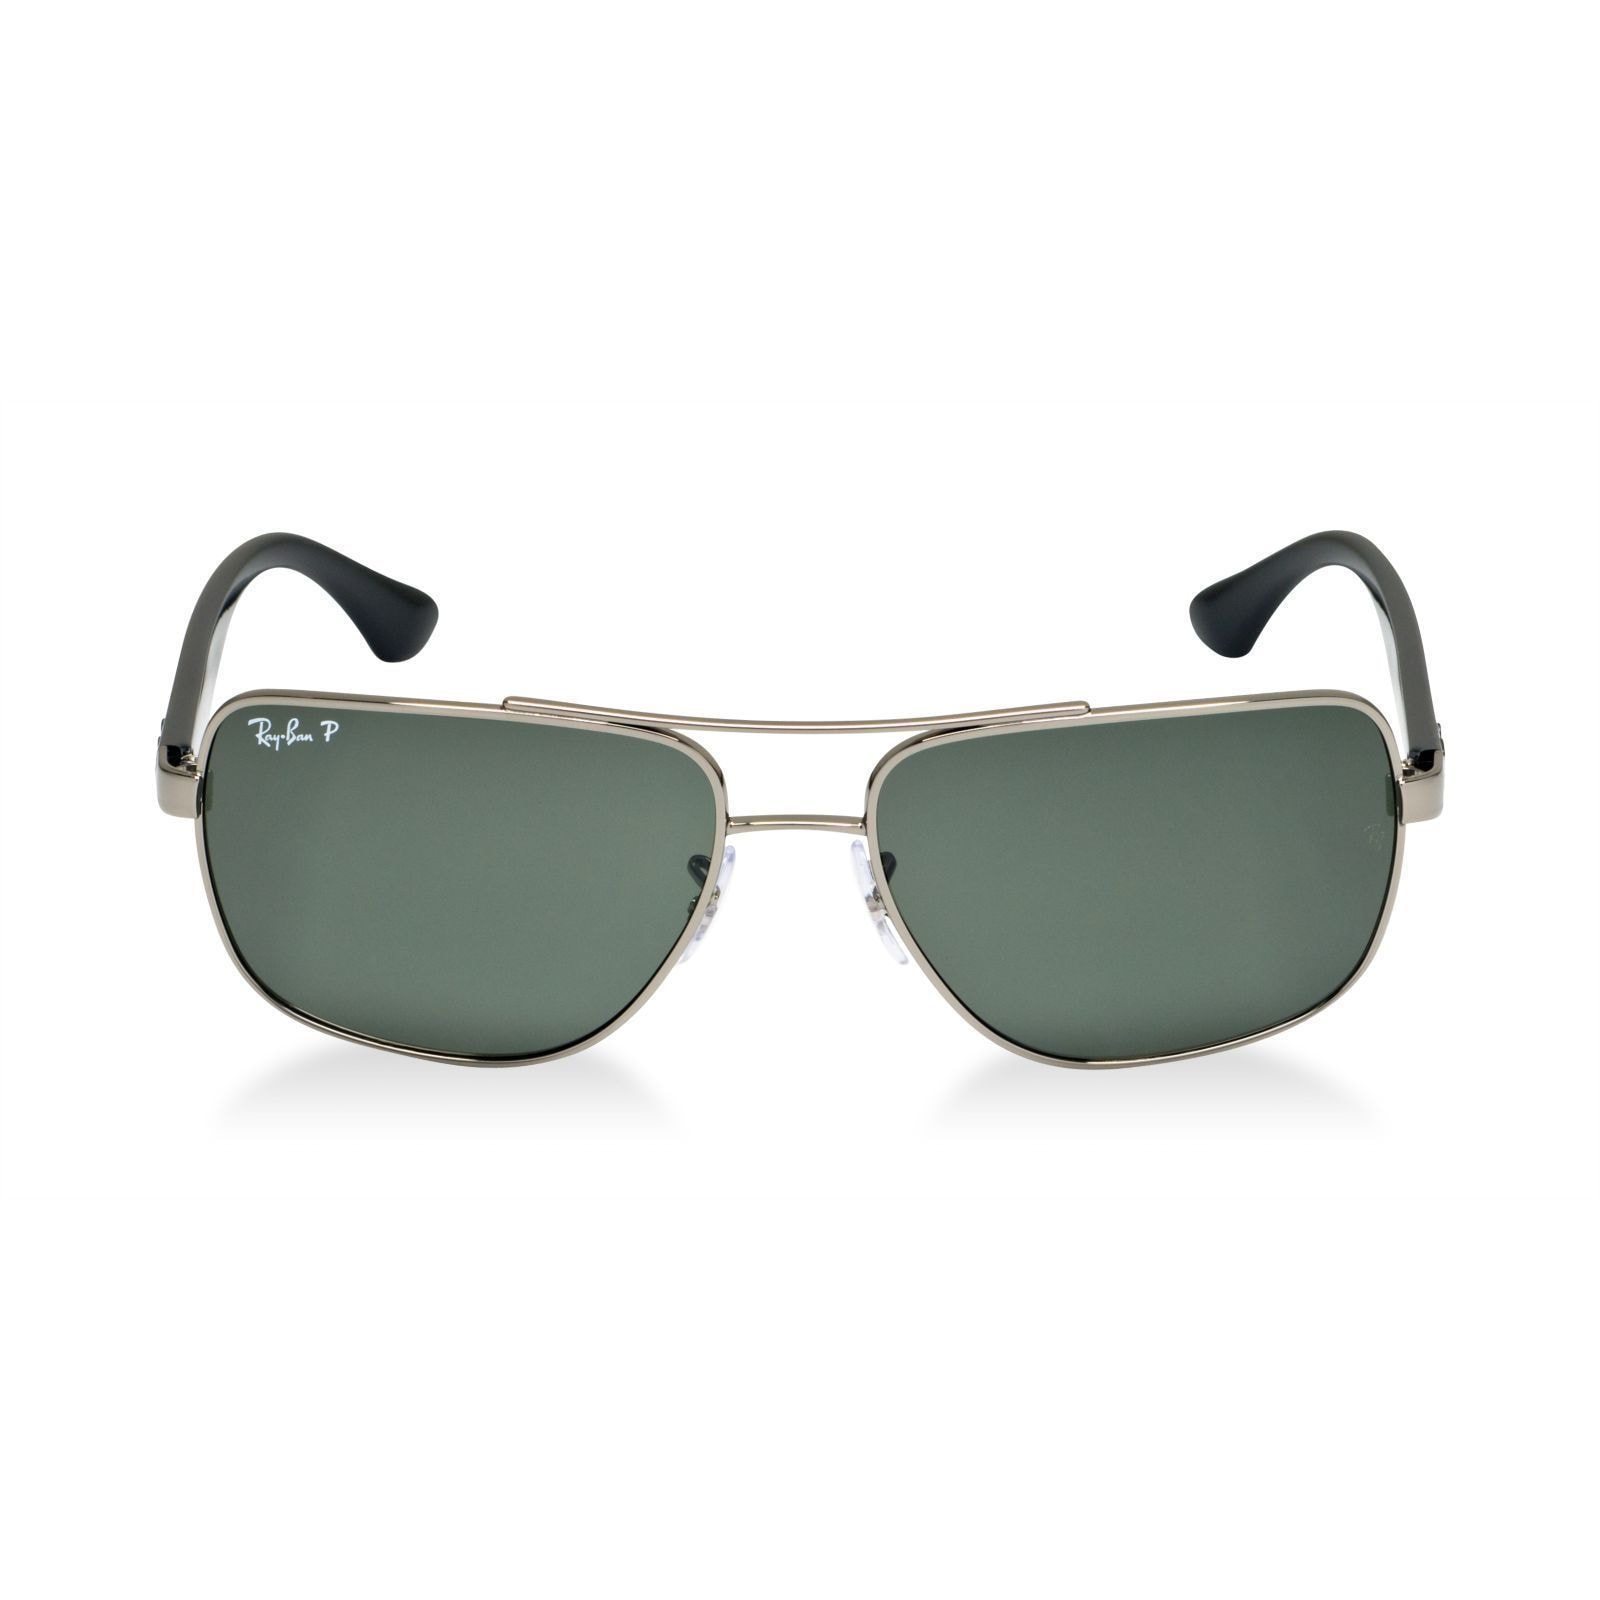 6c62cb5c5966c ... ebay shop ray ban rb3483 004 58 mens gunmetal black frame polarized  green lens sunglasses free